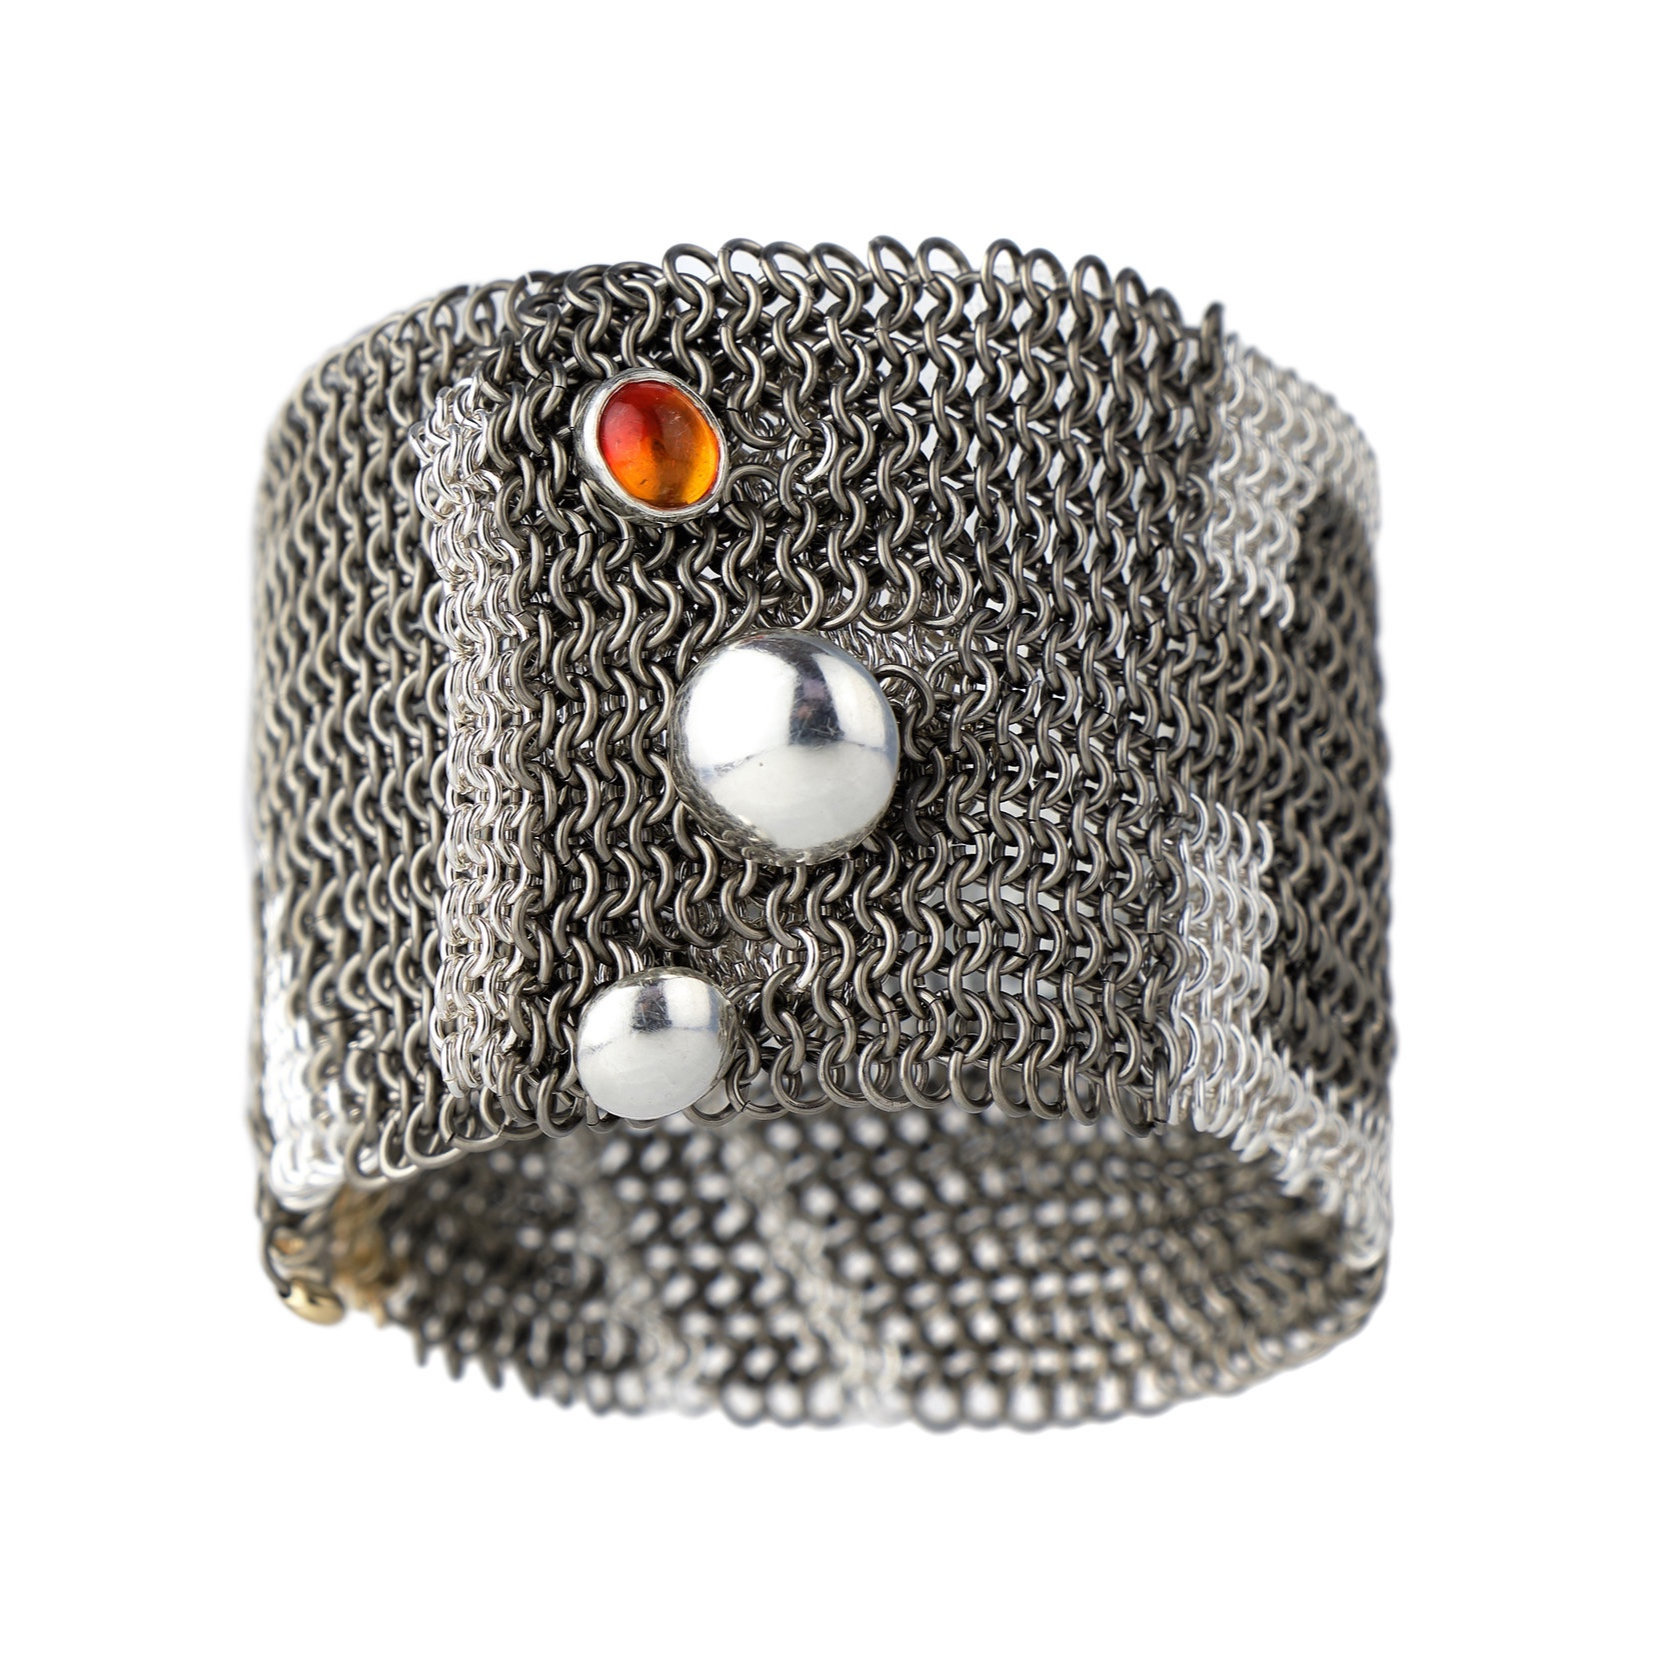 Shop the chainmail collection - Handmade Pattern Chainmail in Titanium, Silver & Gold